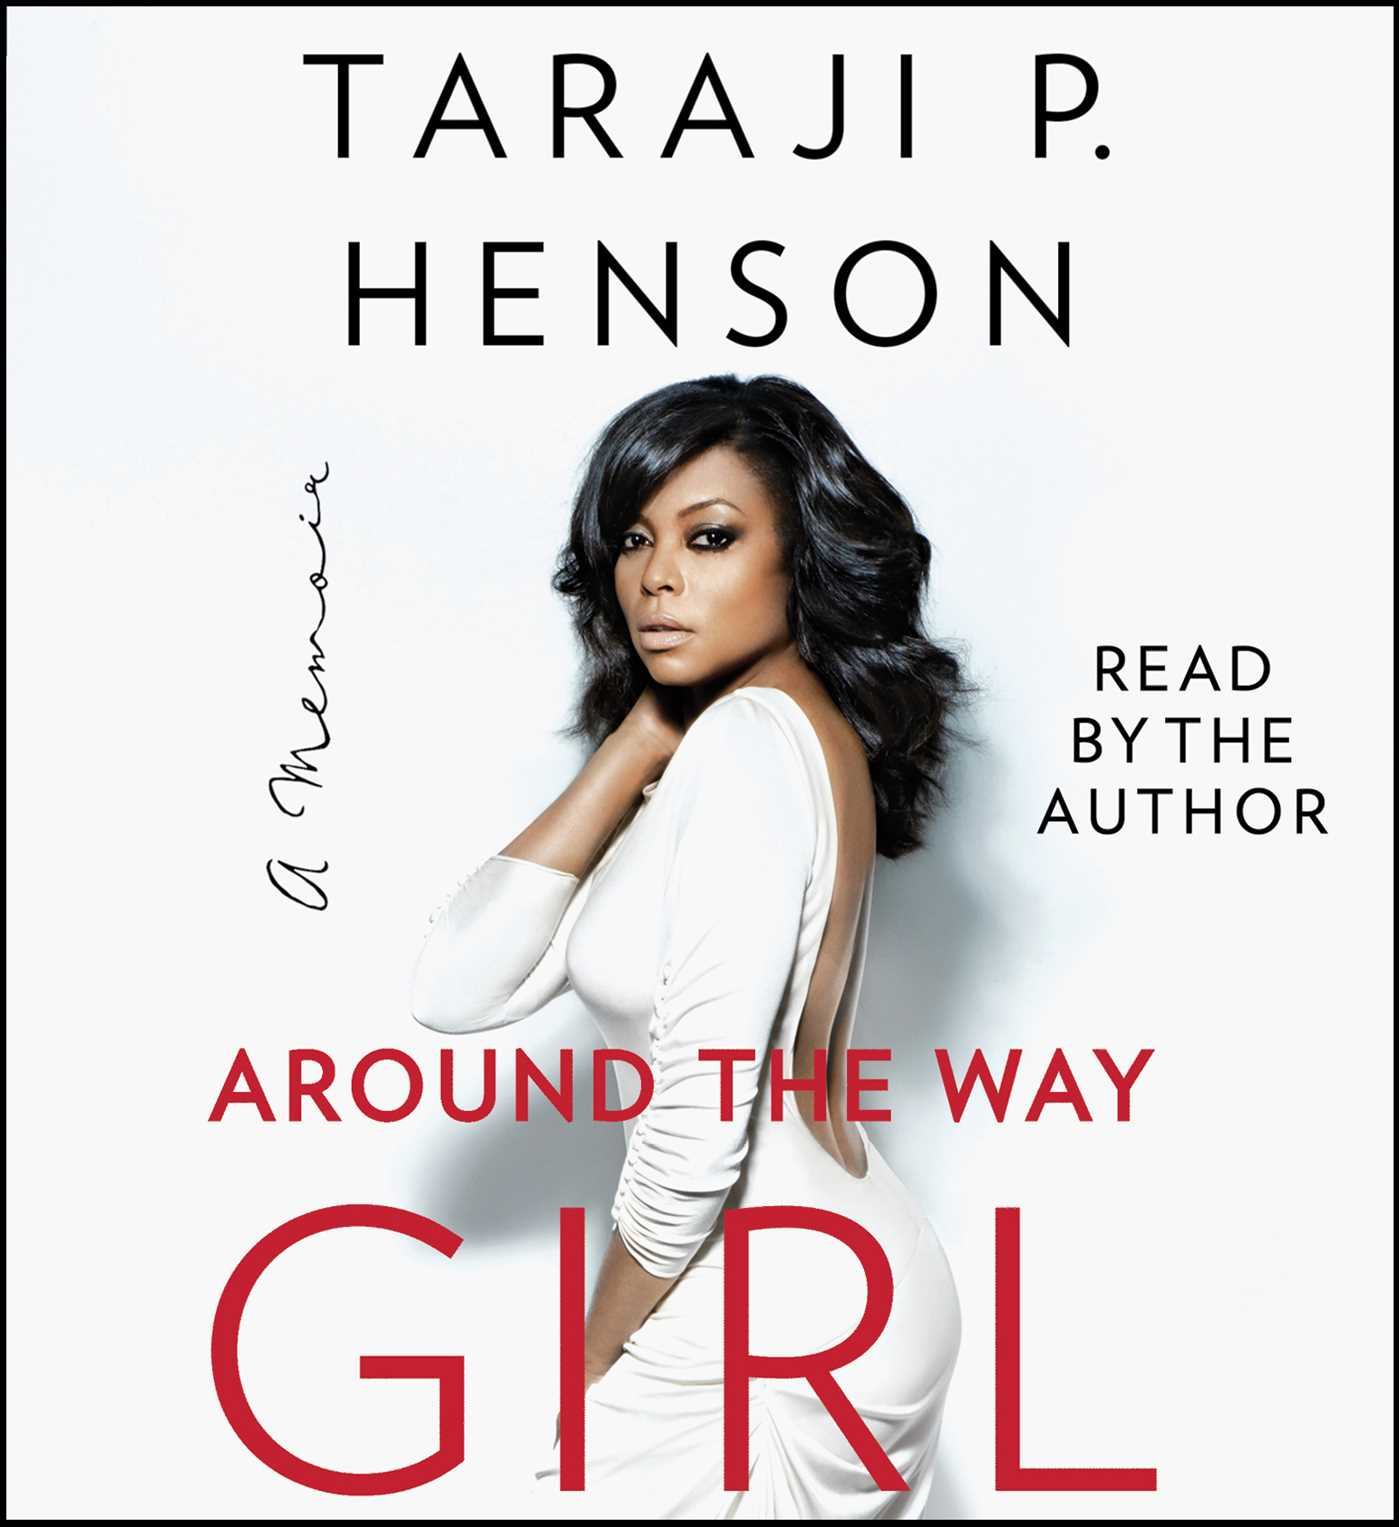 Around the Way Girl Audiobook on CD by Taraji P. Henson ...